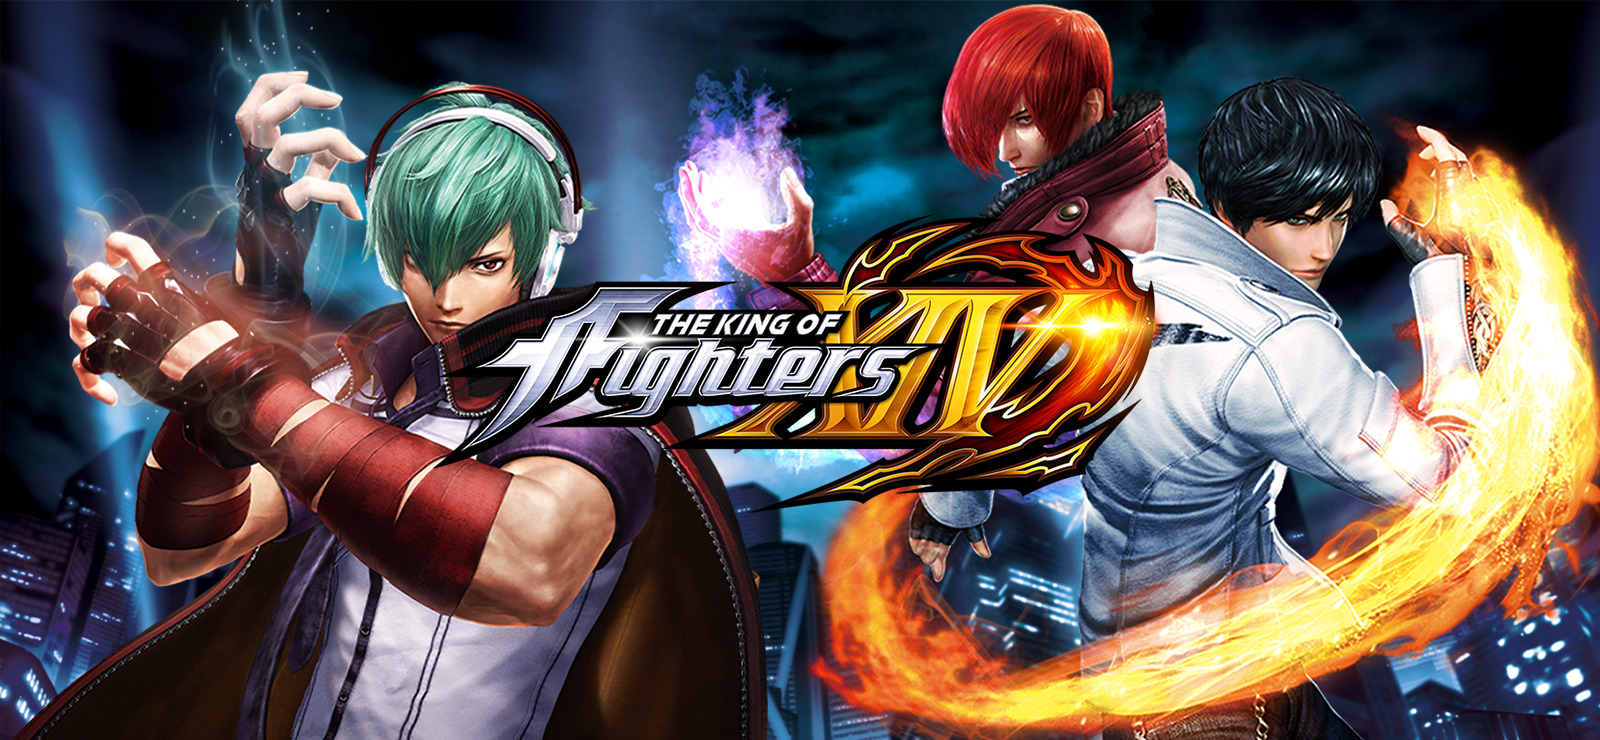 The King Of Fighters Xiv Galaxy Edition On Gog Com